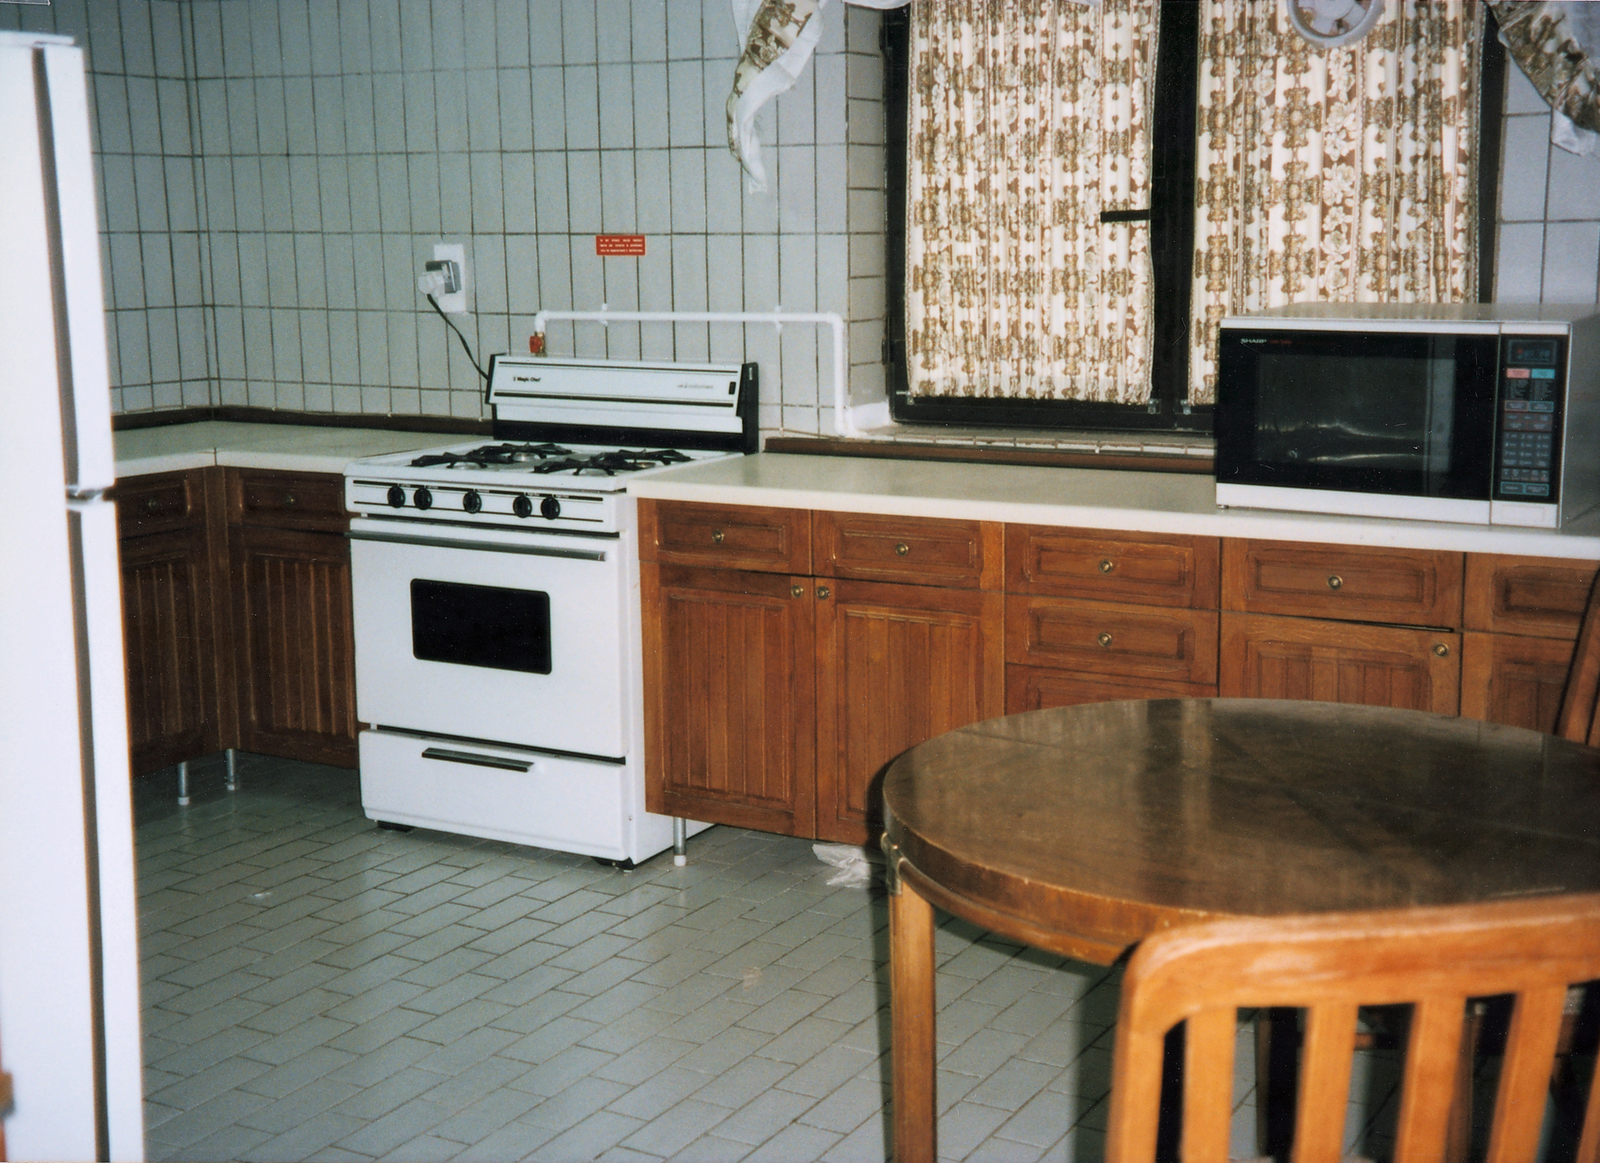 Sanaa - Temporary Duty/Transient Residential Unit - 1996